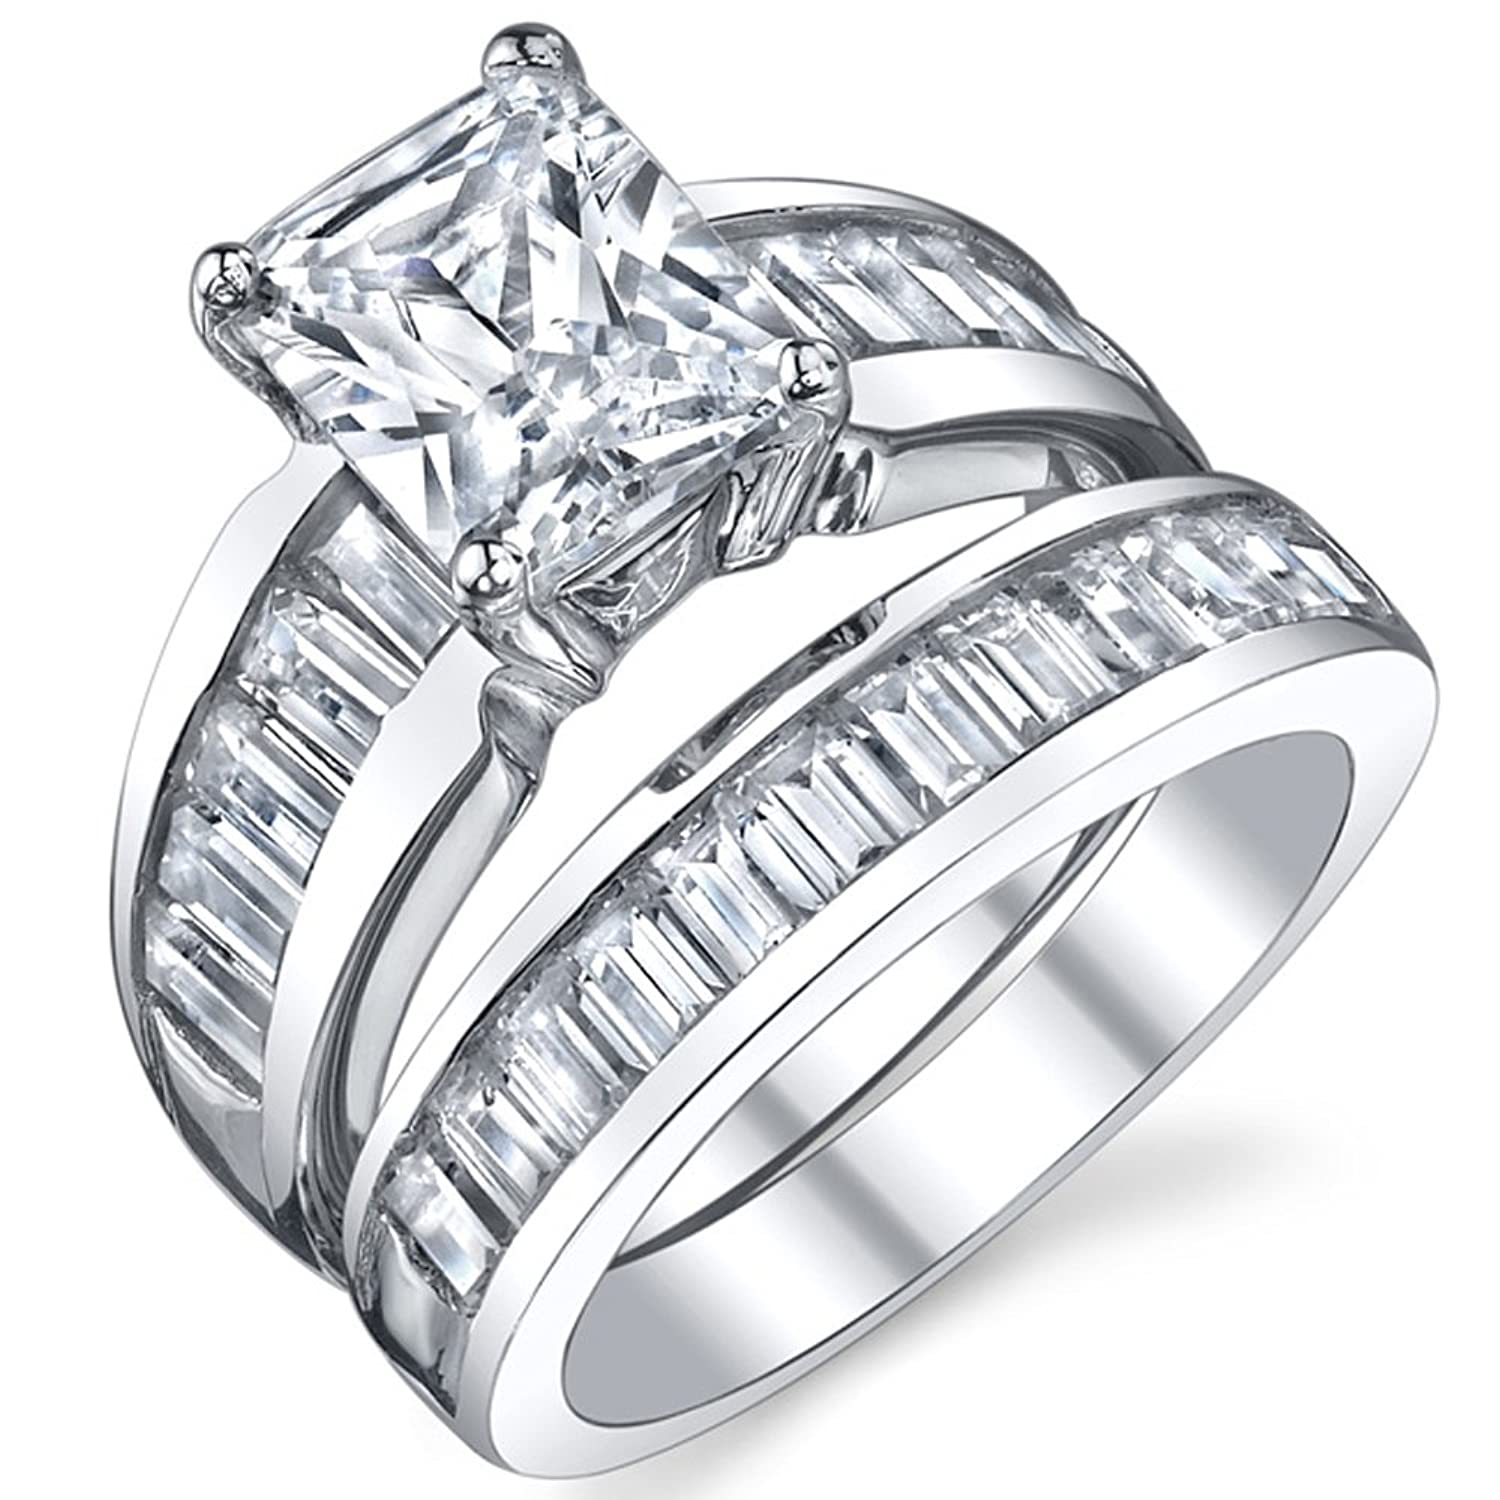 Sterling Silver 3 Carat Radiant Cut Cubic Engagement Ring Wedding